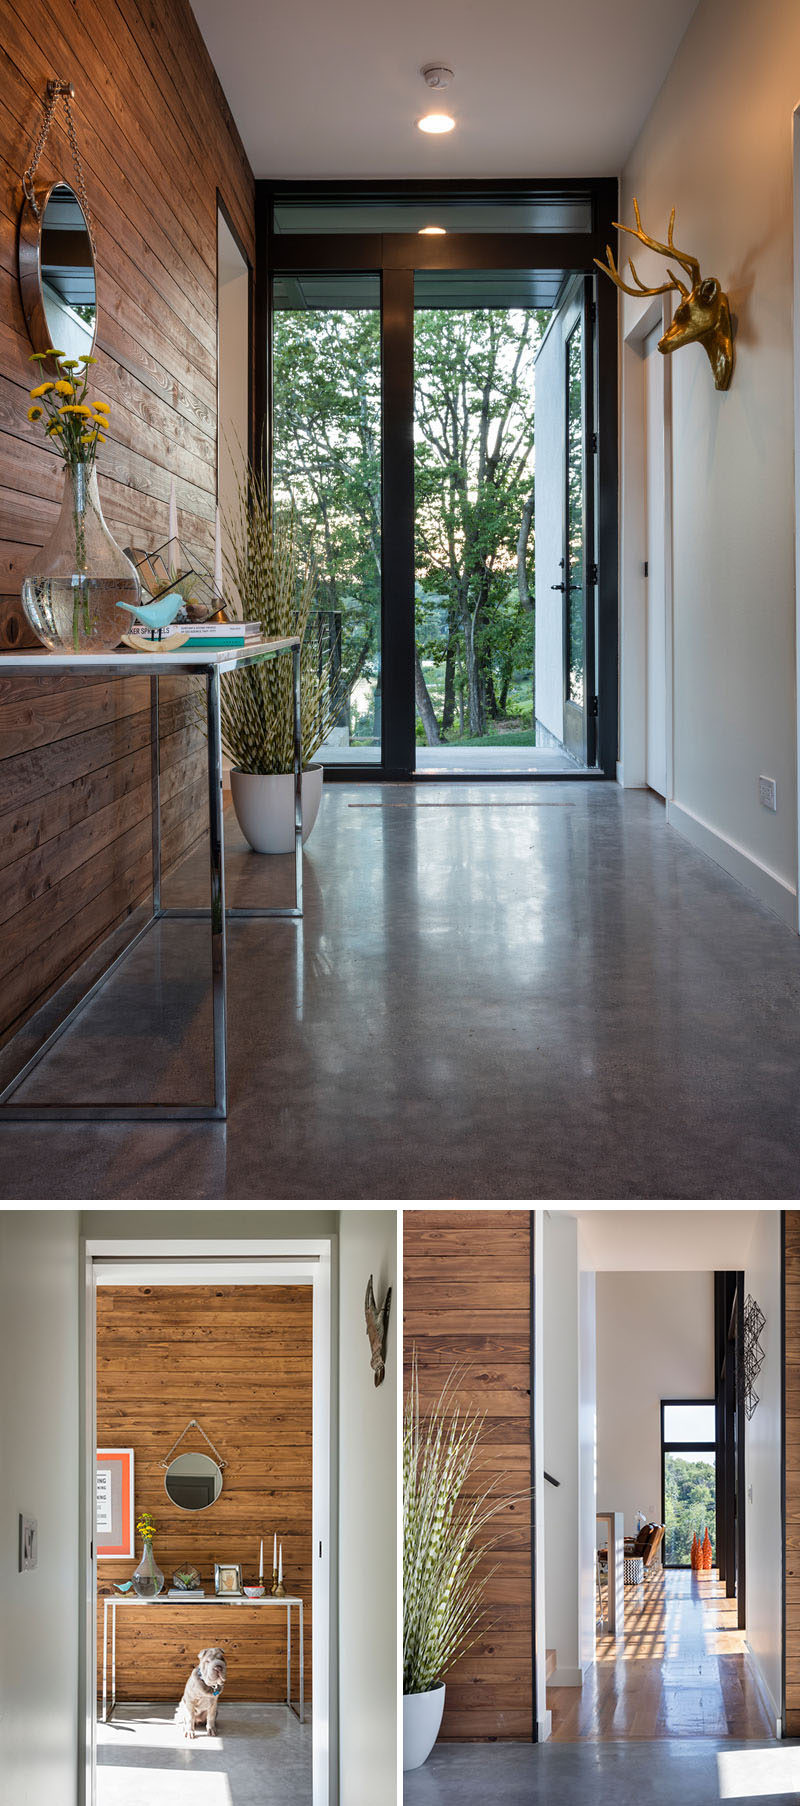 In this modern house, the entryway has a polished concrete floor and a wood accent wall that welcome you to the home.